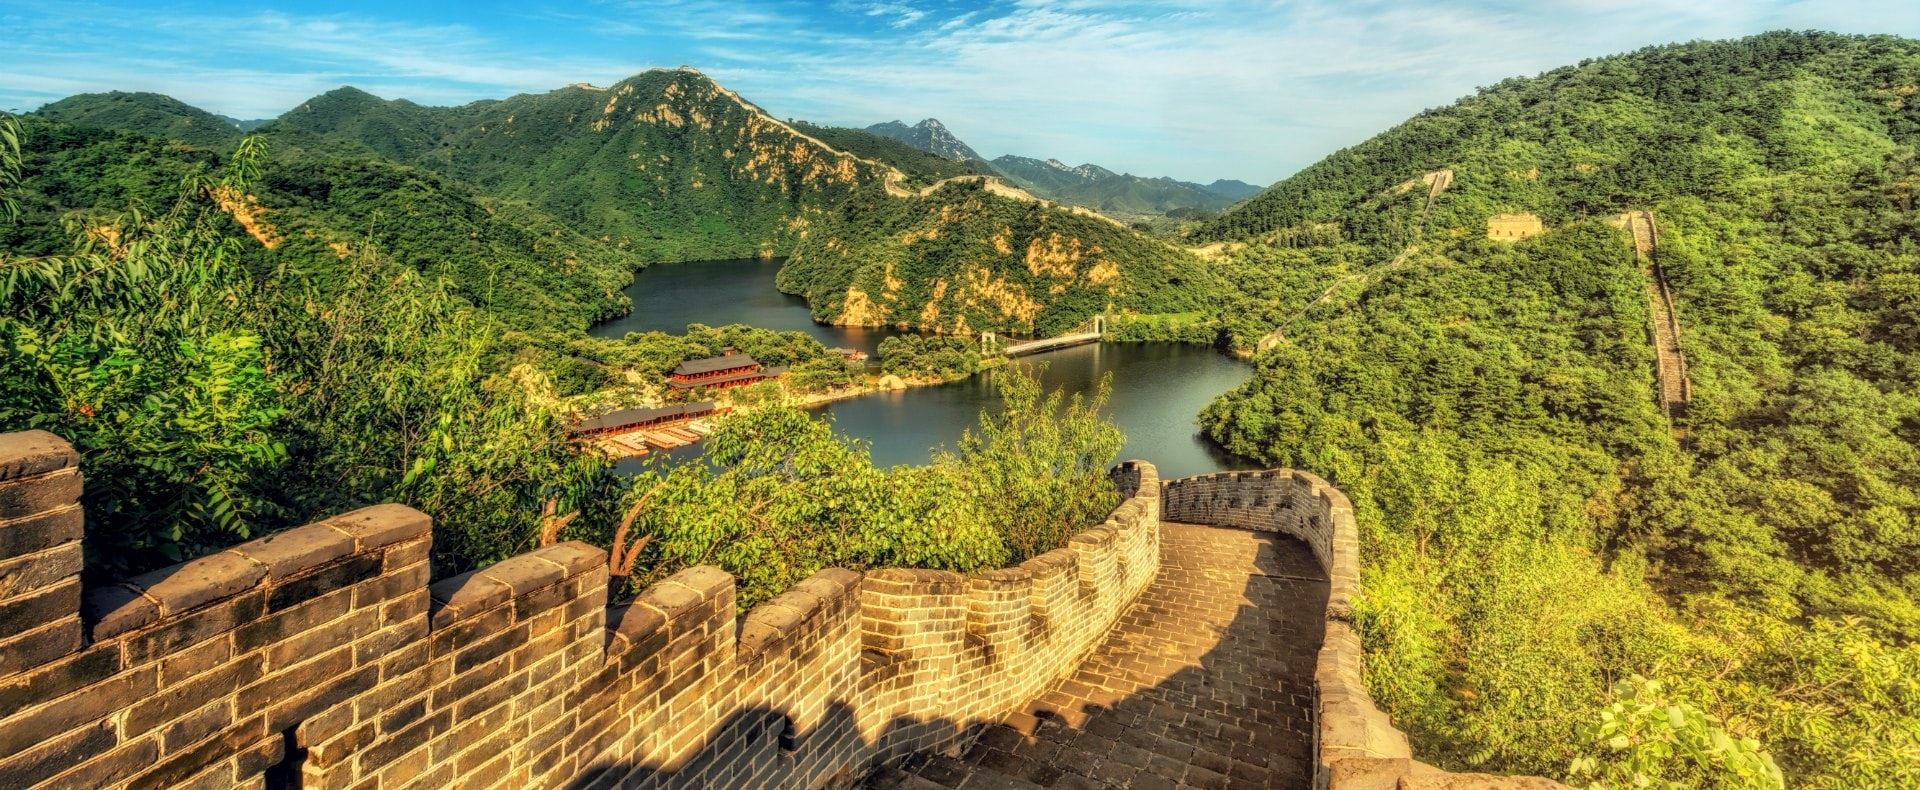 The Great Wall of China Gallery